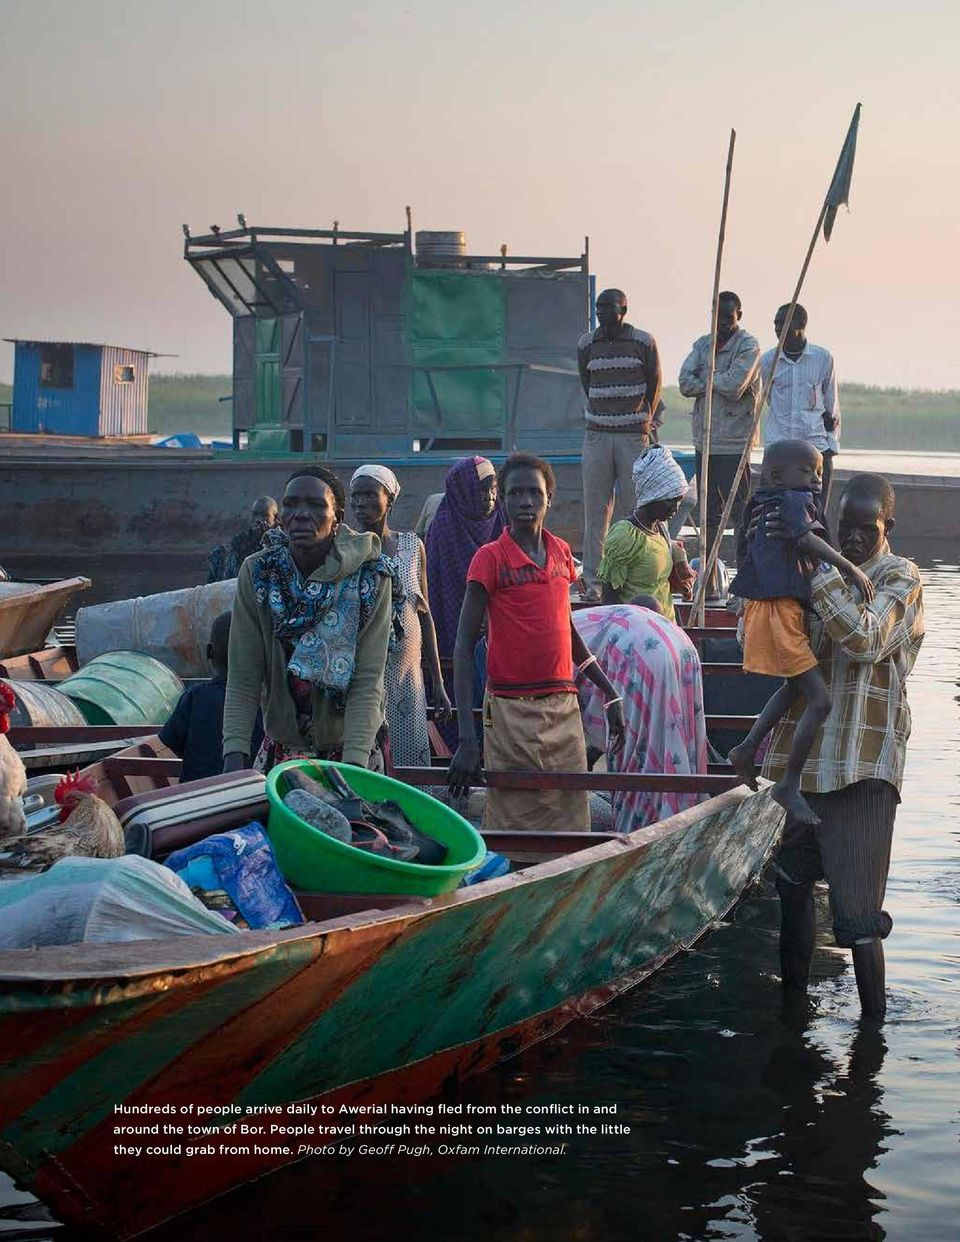 Bor. People travel through the night on barges with the little